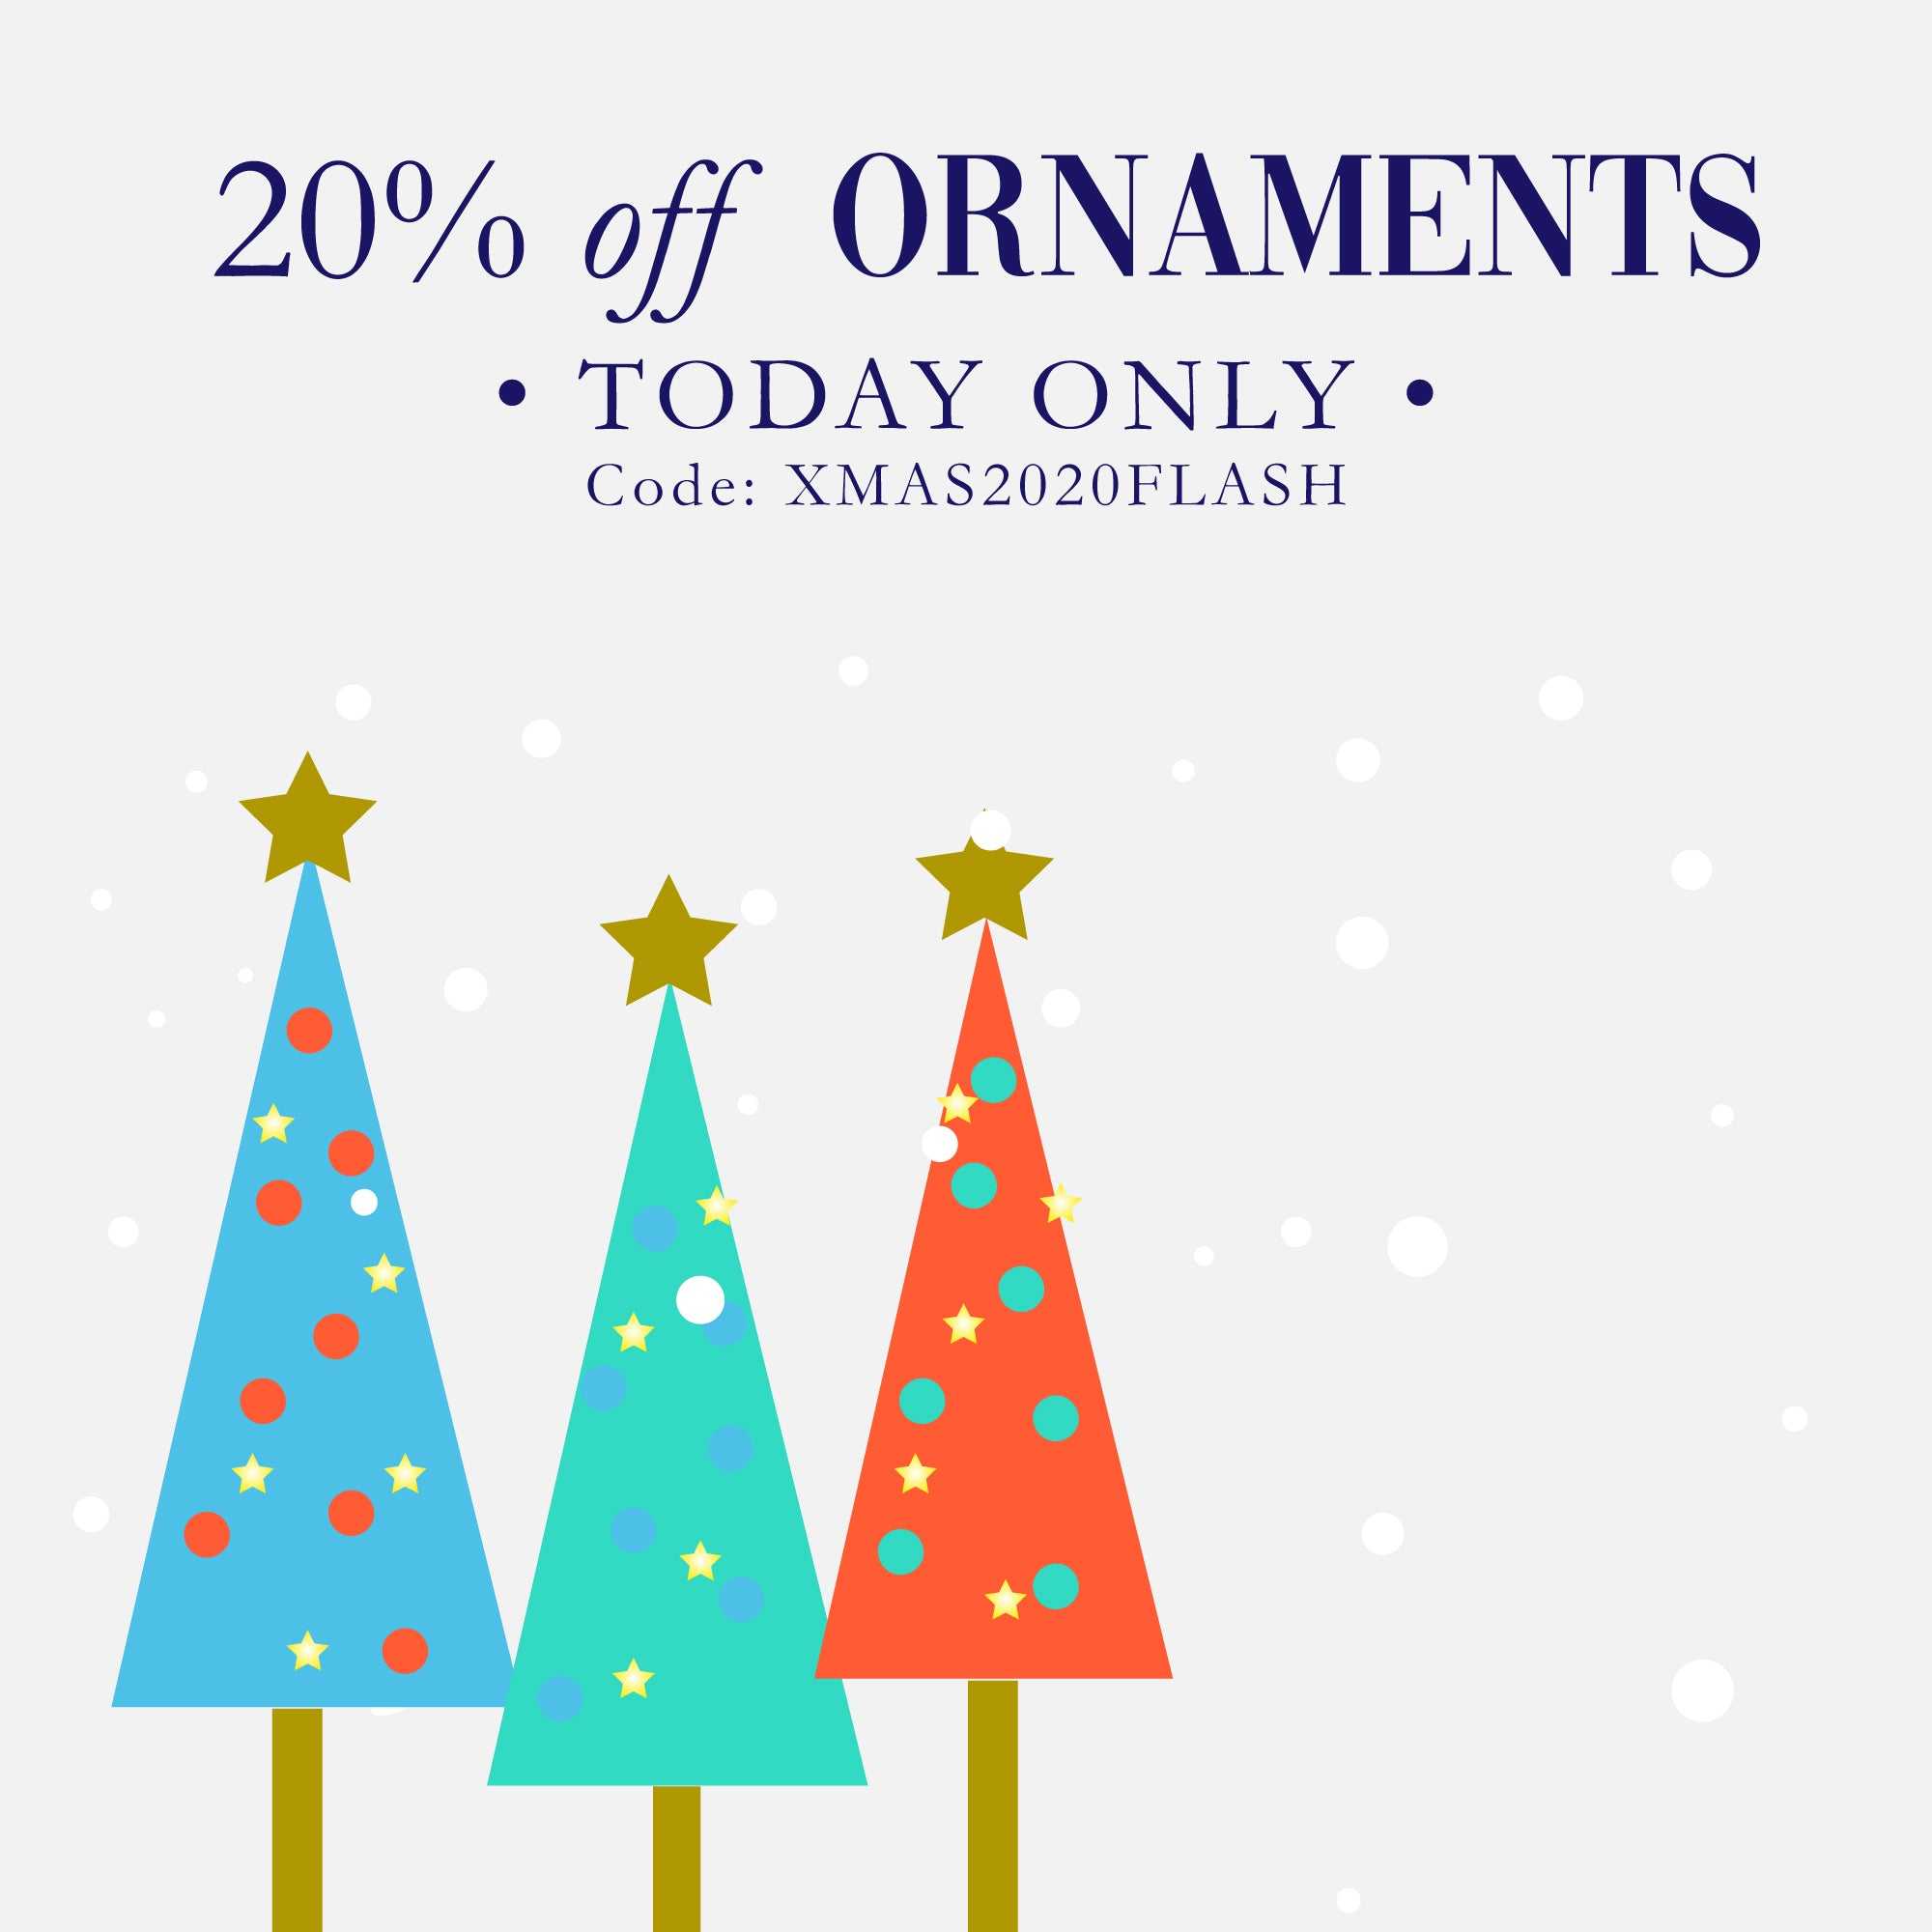 20% off ornaments today